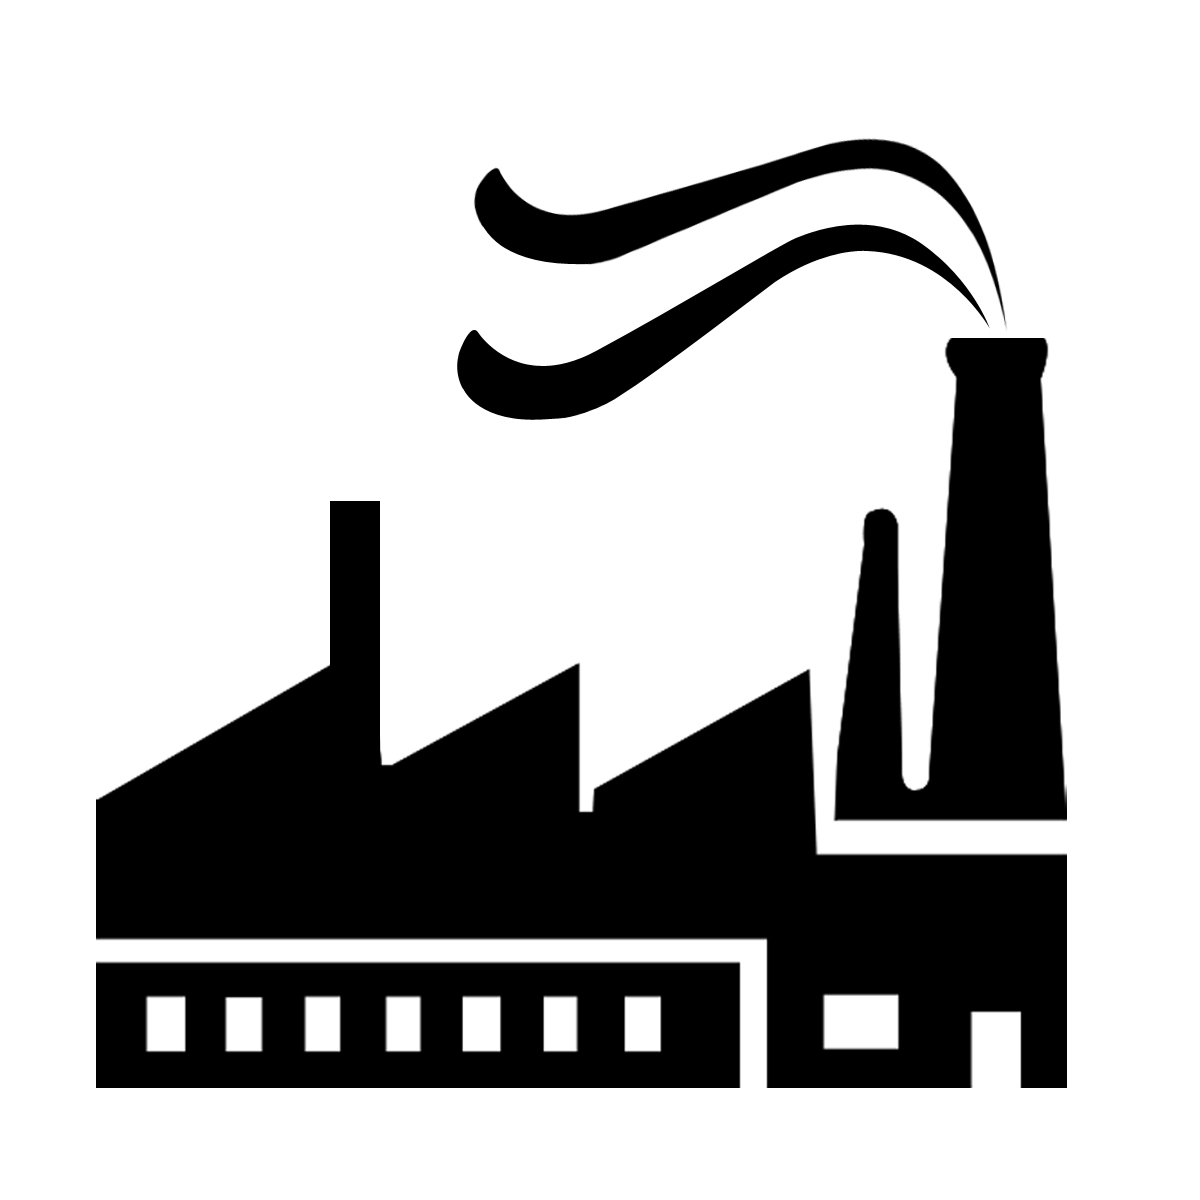 Manufacturing companies in clipart clip art black and white stock Industry clipart industrial sector - 180 transparent clip arts ... clip art black and white stock